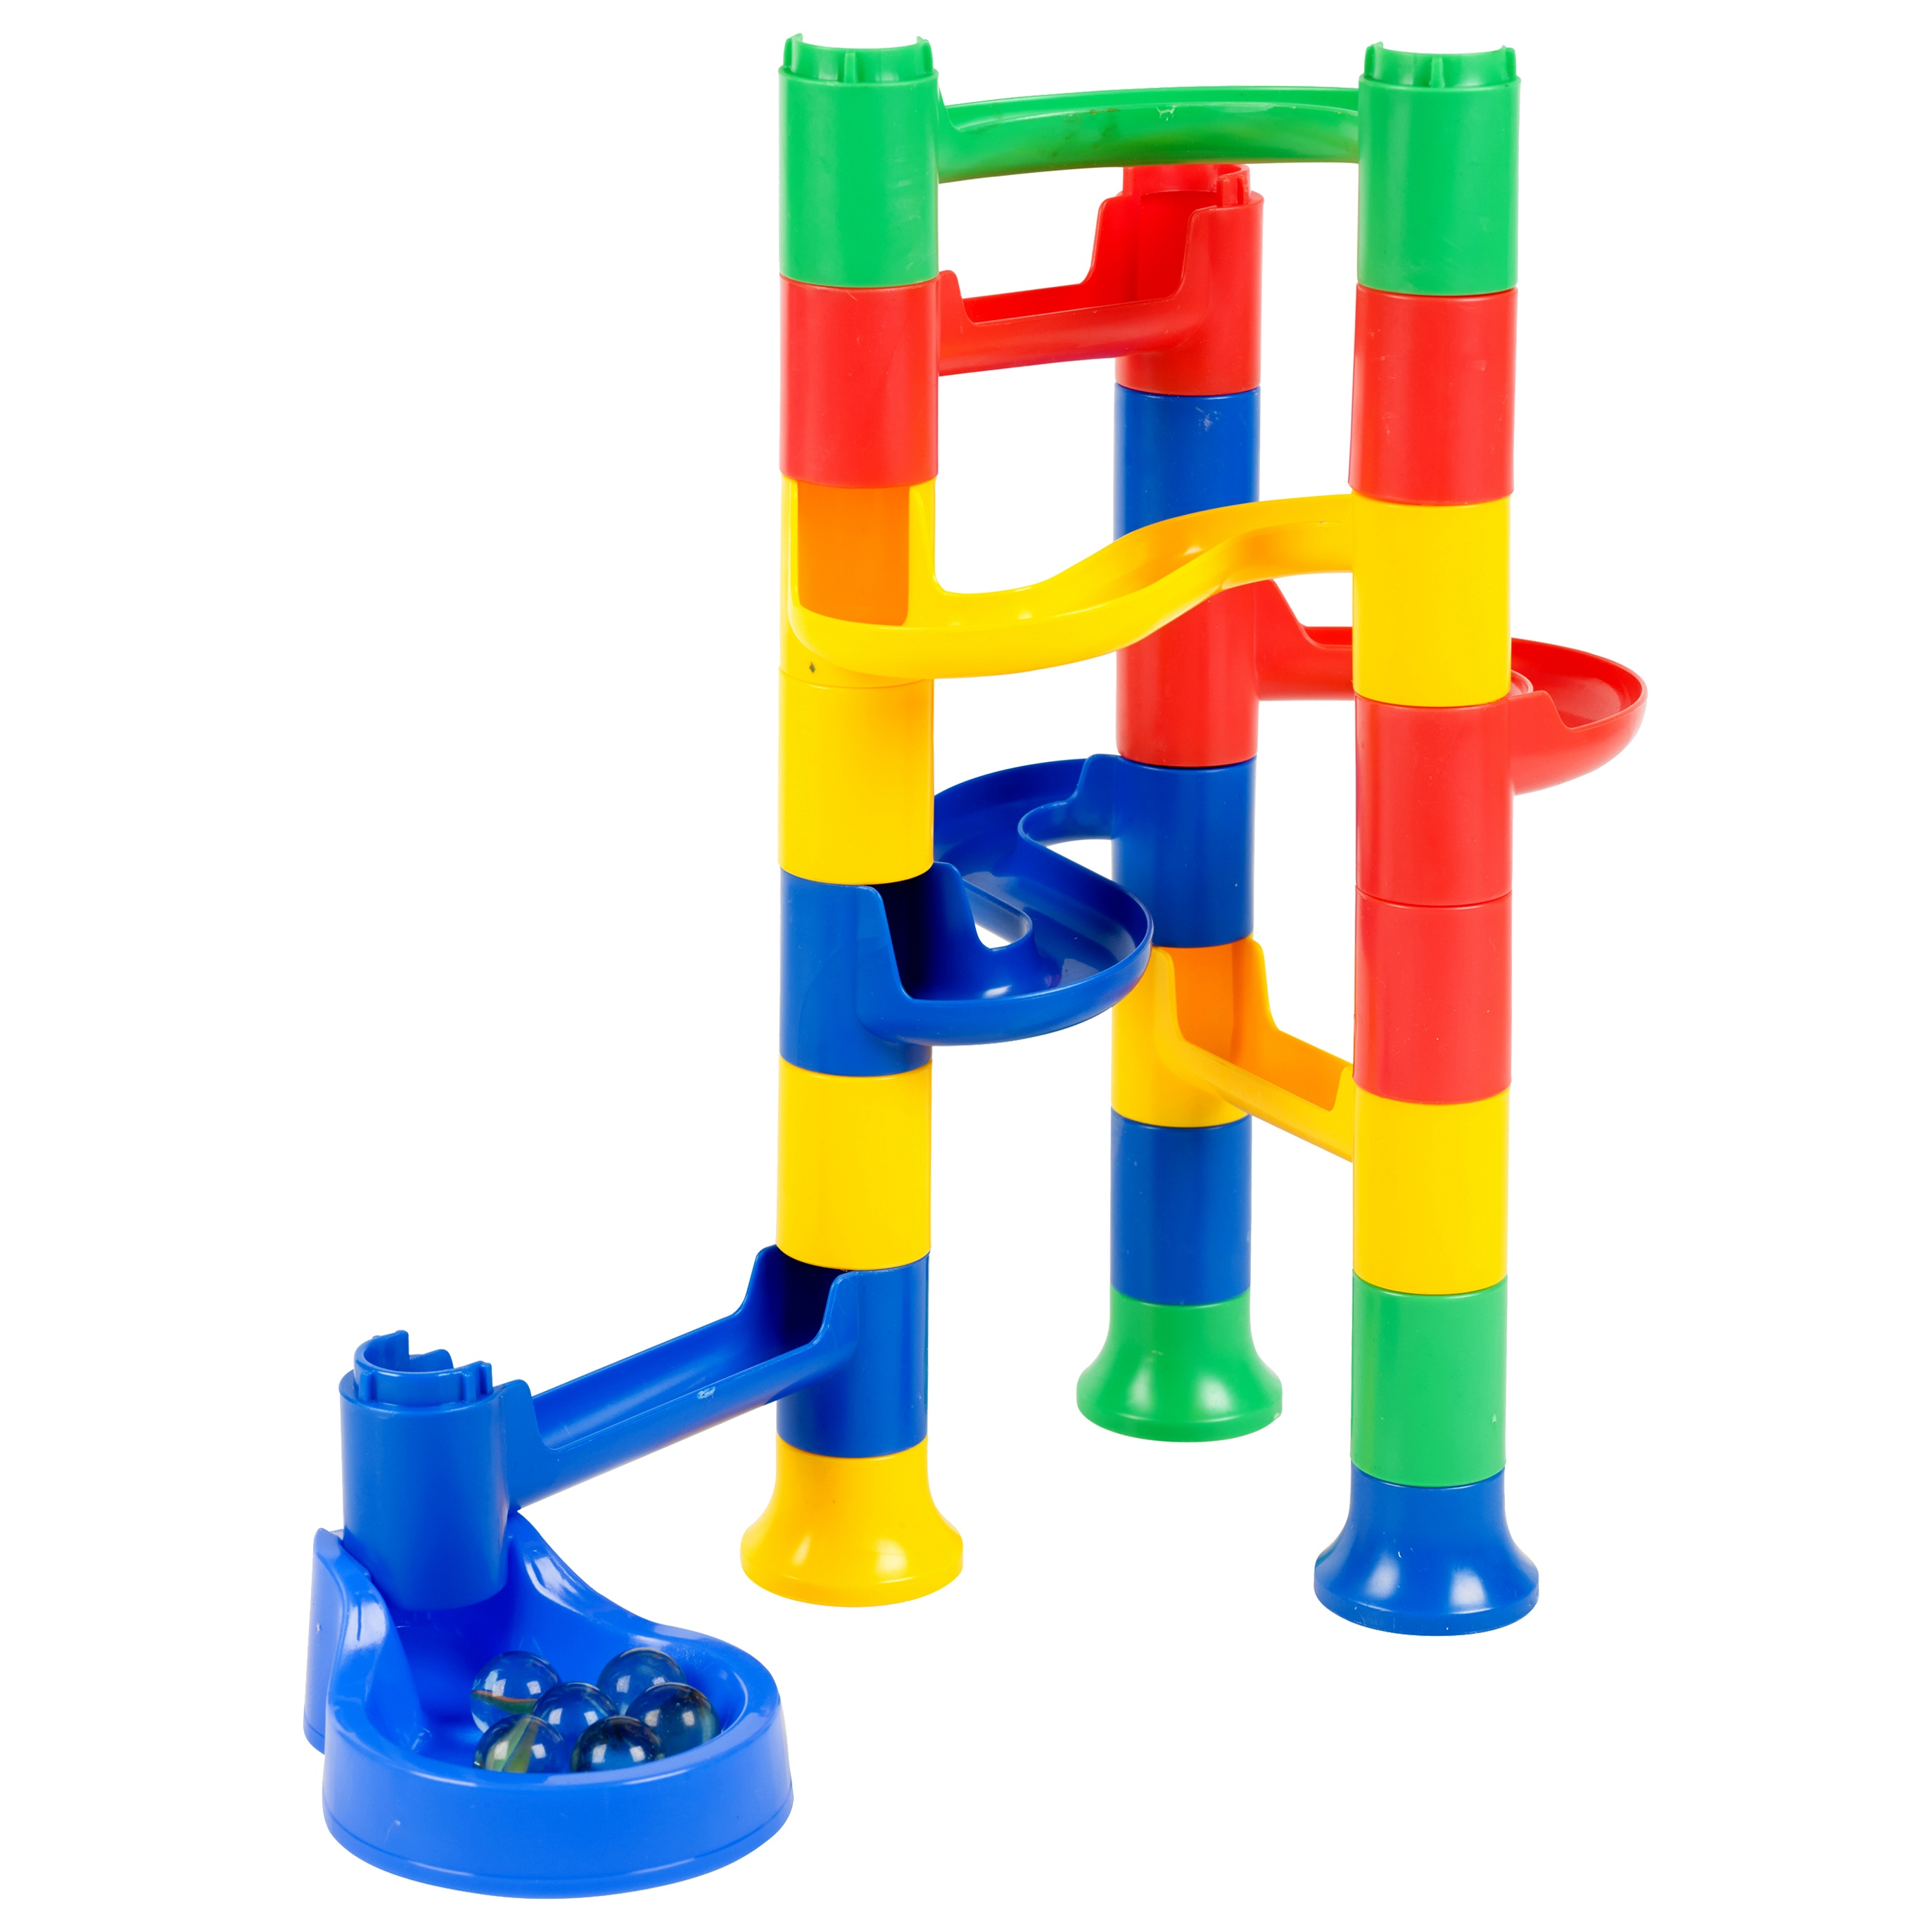 Marble Tower Toys 98